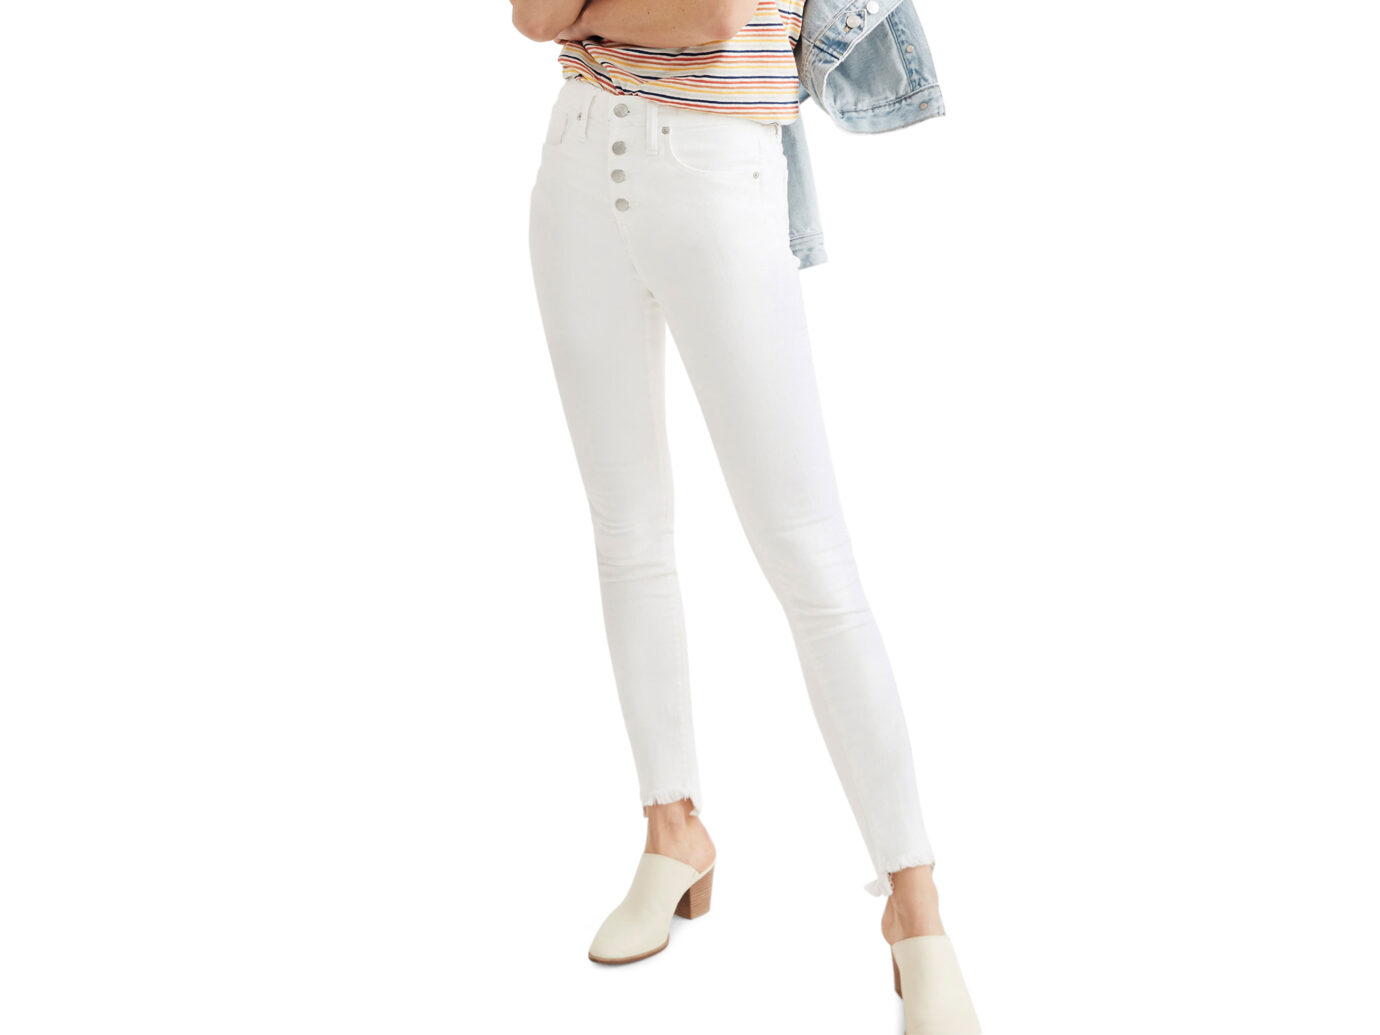 Madewell High Waist Button Front Ankle Skinny Jeans